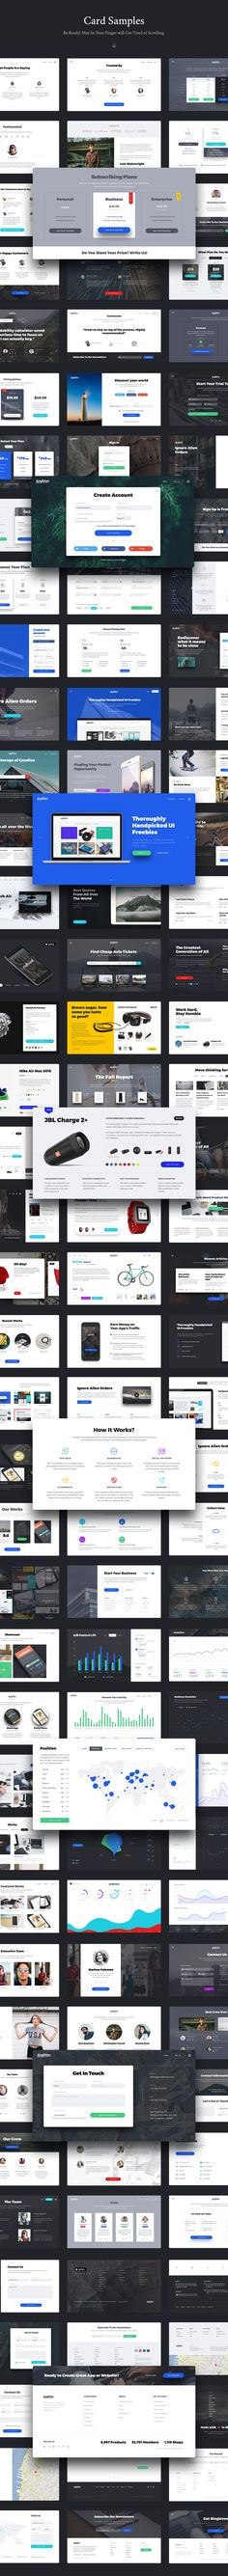 UPD: Sketch version was added. --- Singleton - perfect, fresh and stylish UI Kit for building beautiful Landing Pages. This clear and practical UI tool consists of 120 elegant cards in 12